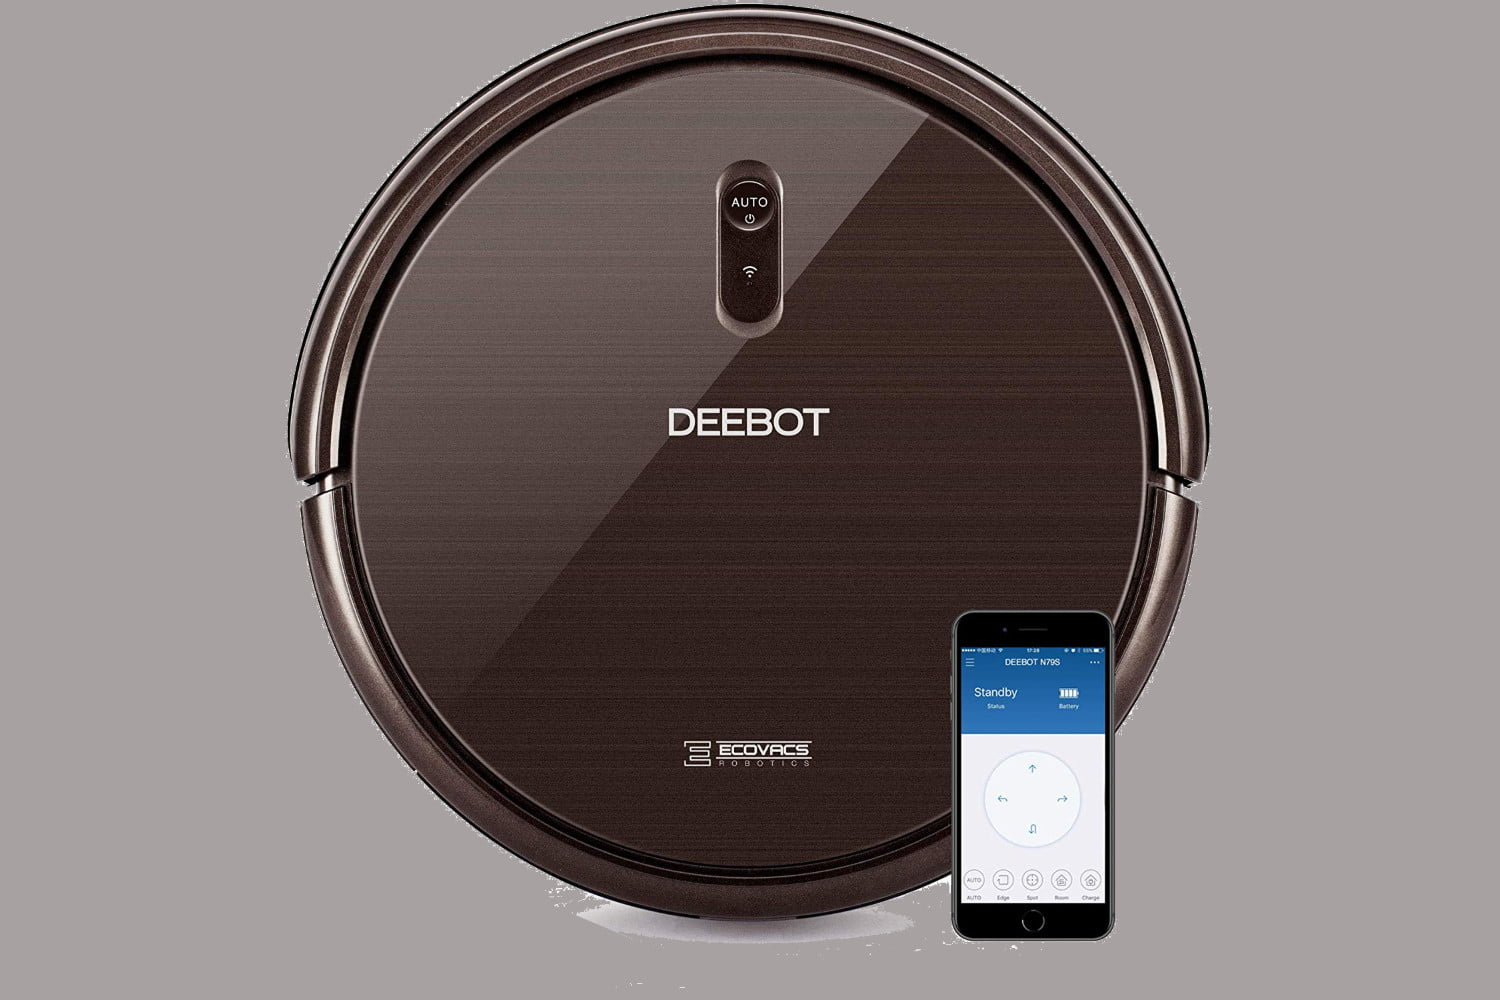 amazon 24 hour deal best price ever on ecovacs deebot n79s robot vac vacuum cleaner  1